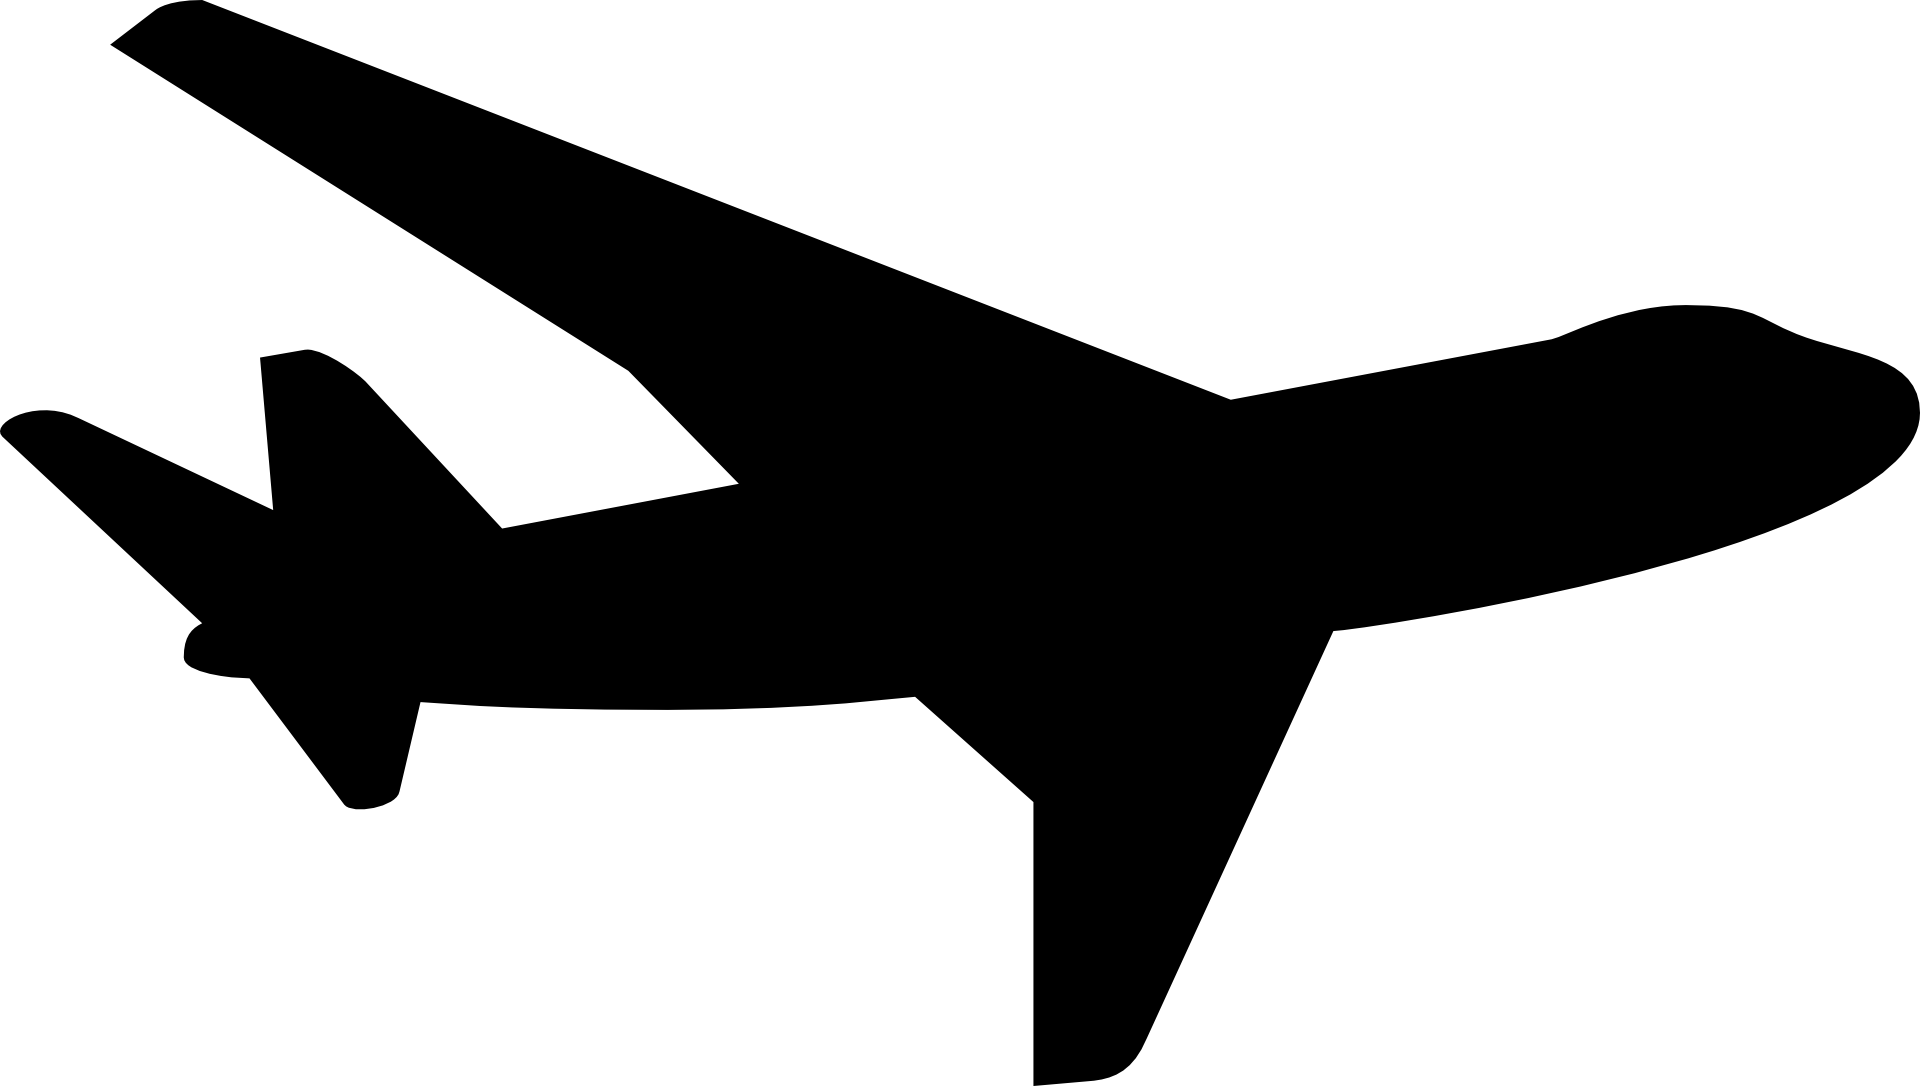 Vintage silhouette at getdrawings. Dot clipart airplane